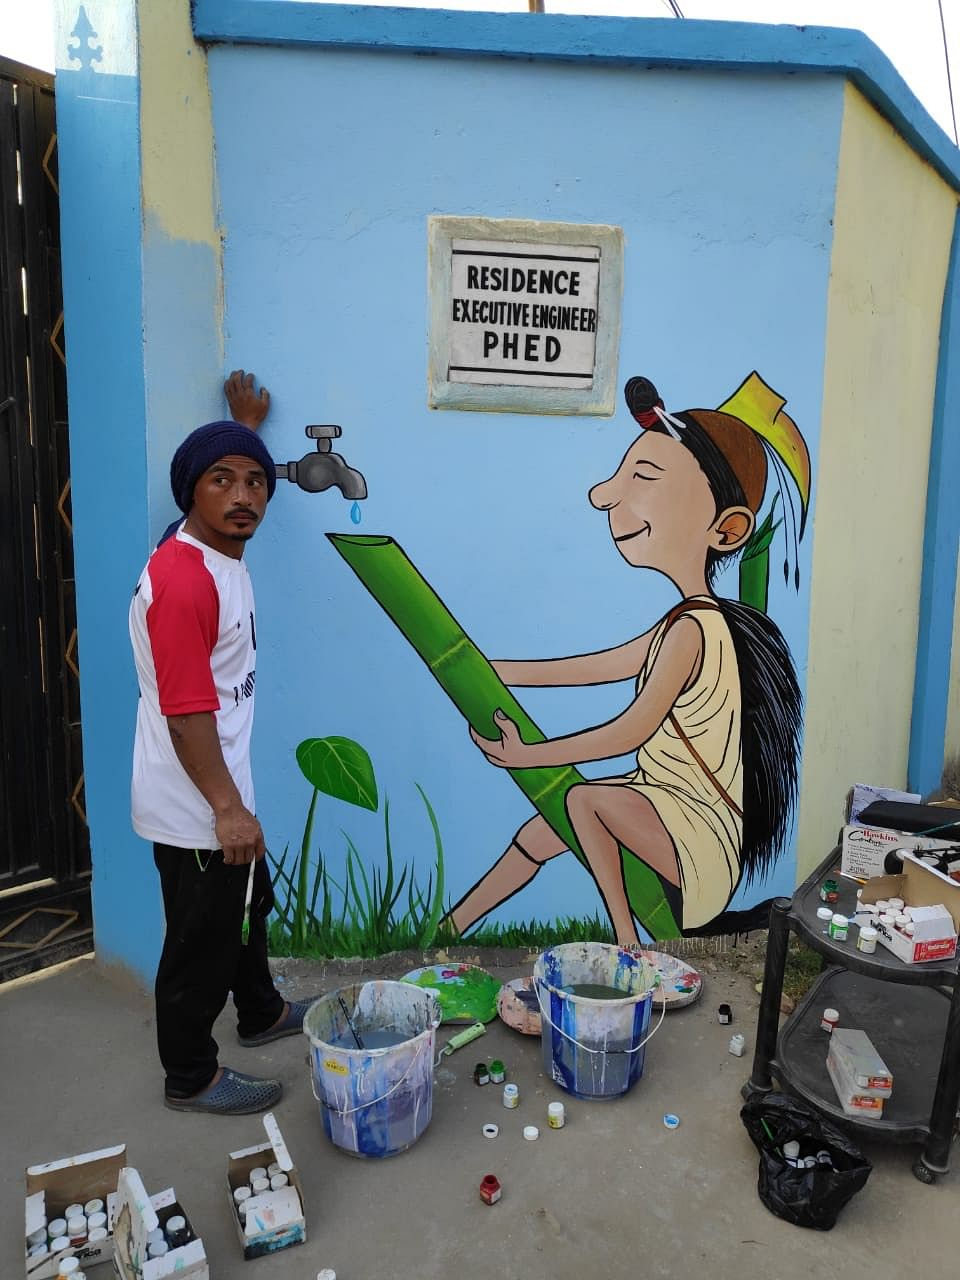 One of the youths after painting the wall of the PHED executive engineer's residence in Seppa of Arunachal Pradesh's East Kameng district